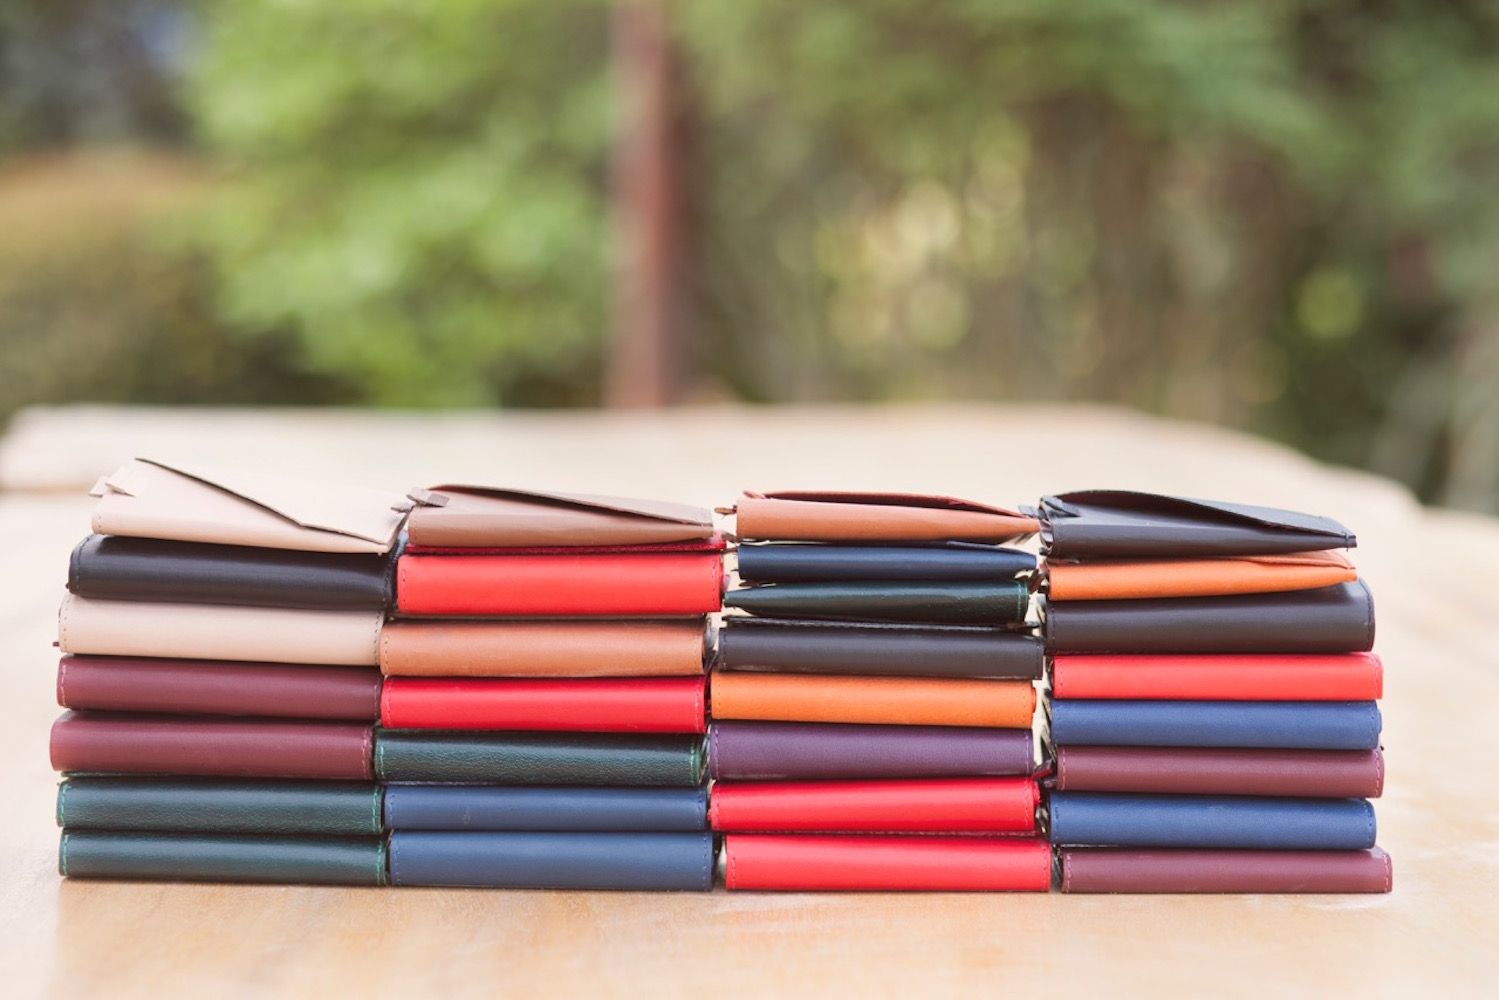 Frenchie Speed Leather Wallet has an AirTag-ready option and includes RFID blocking